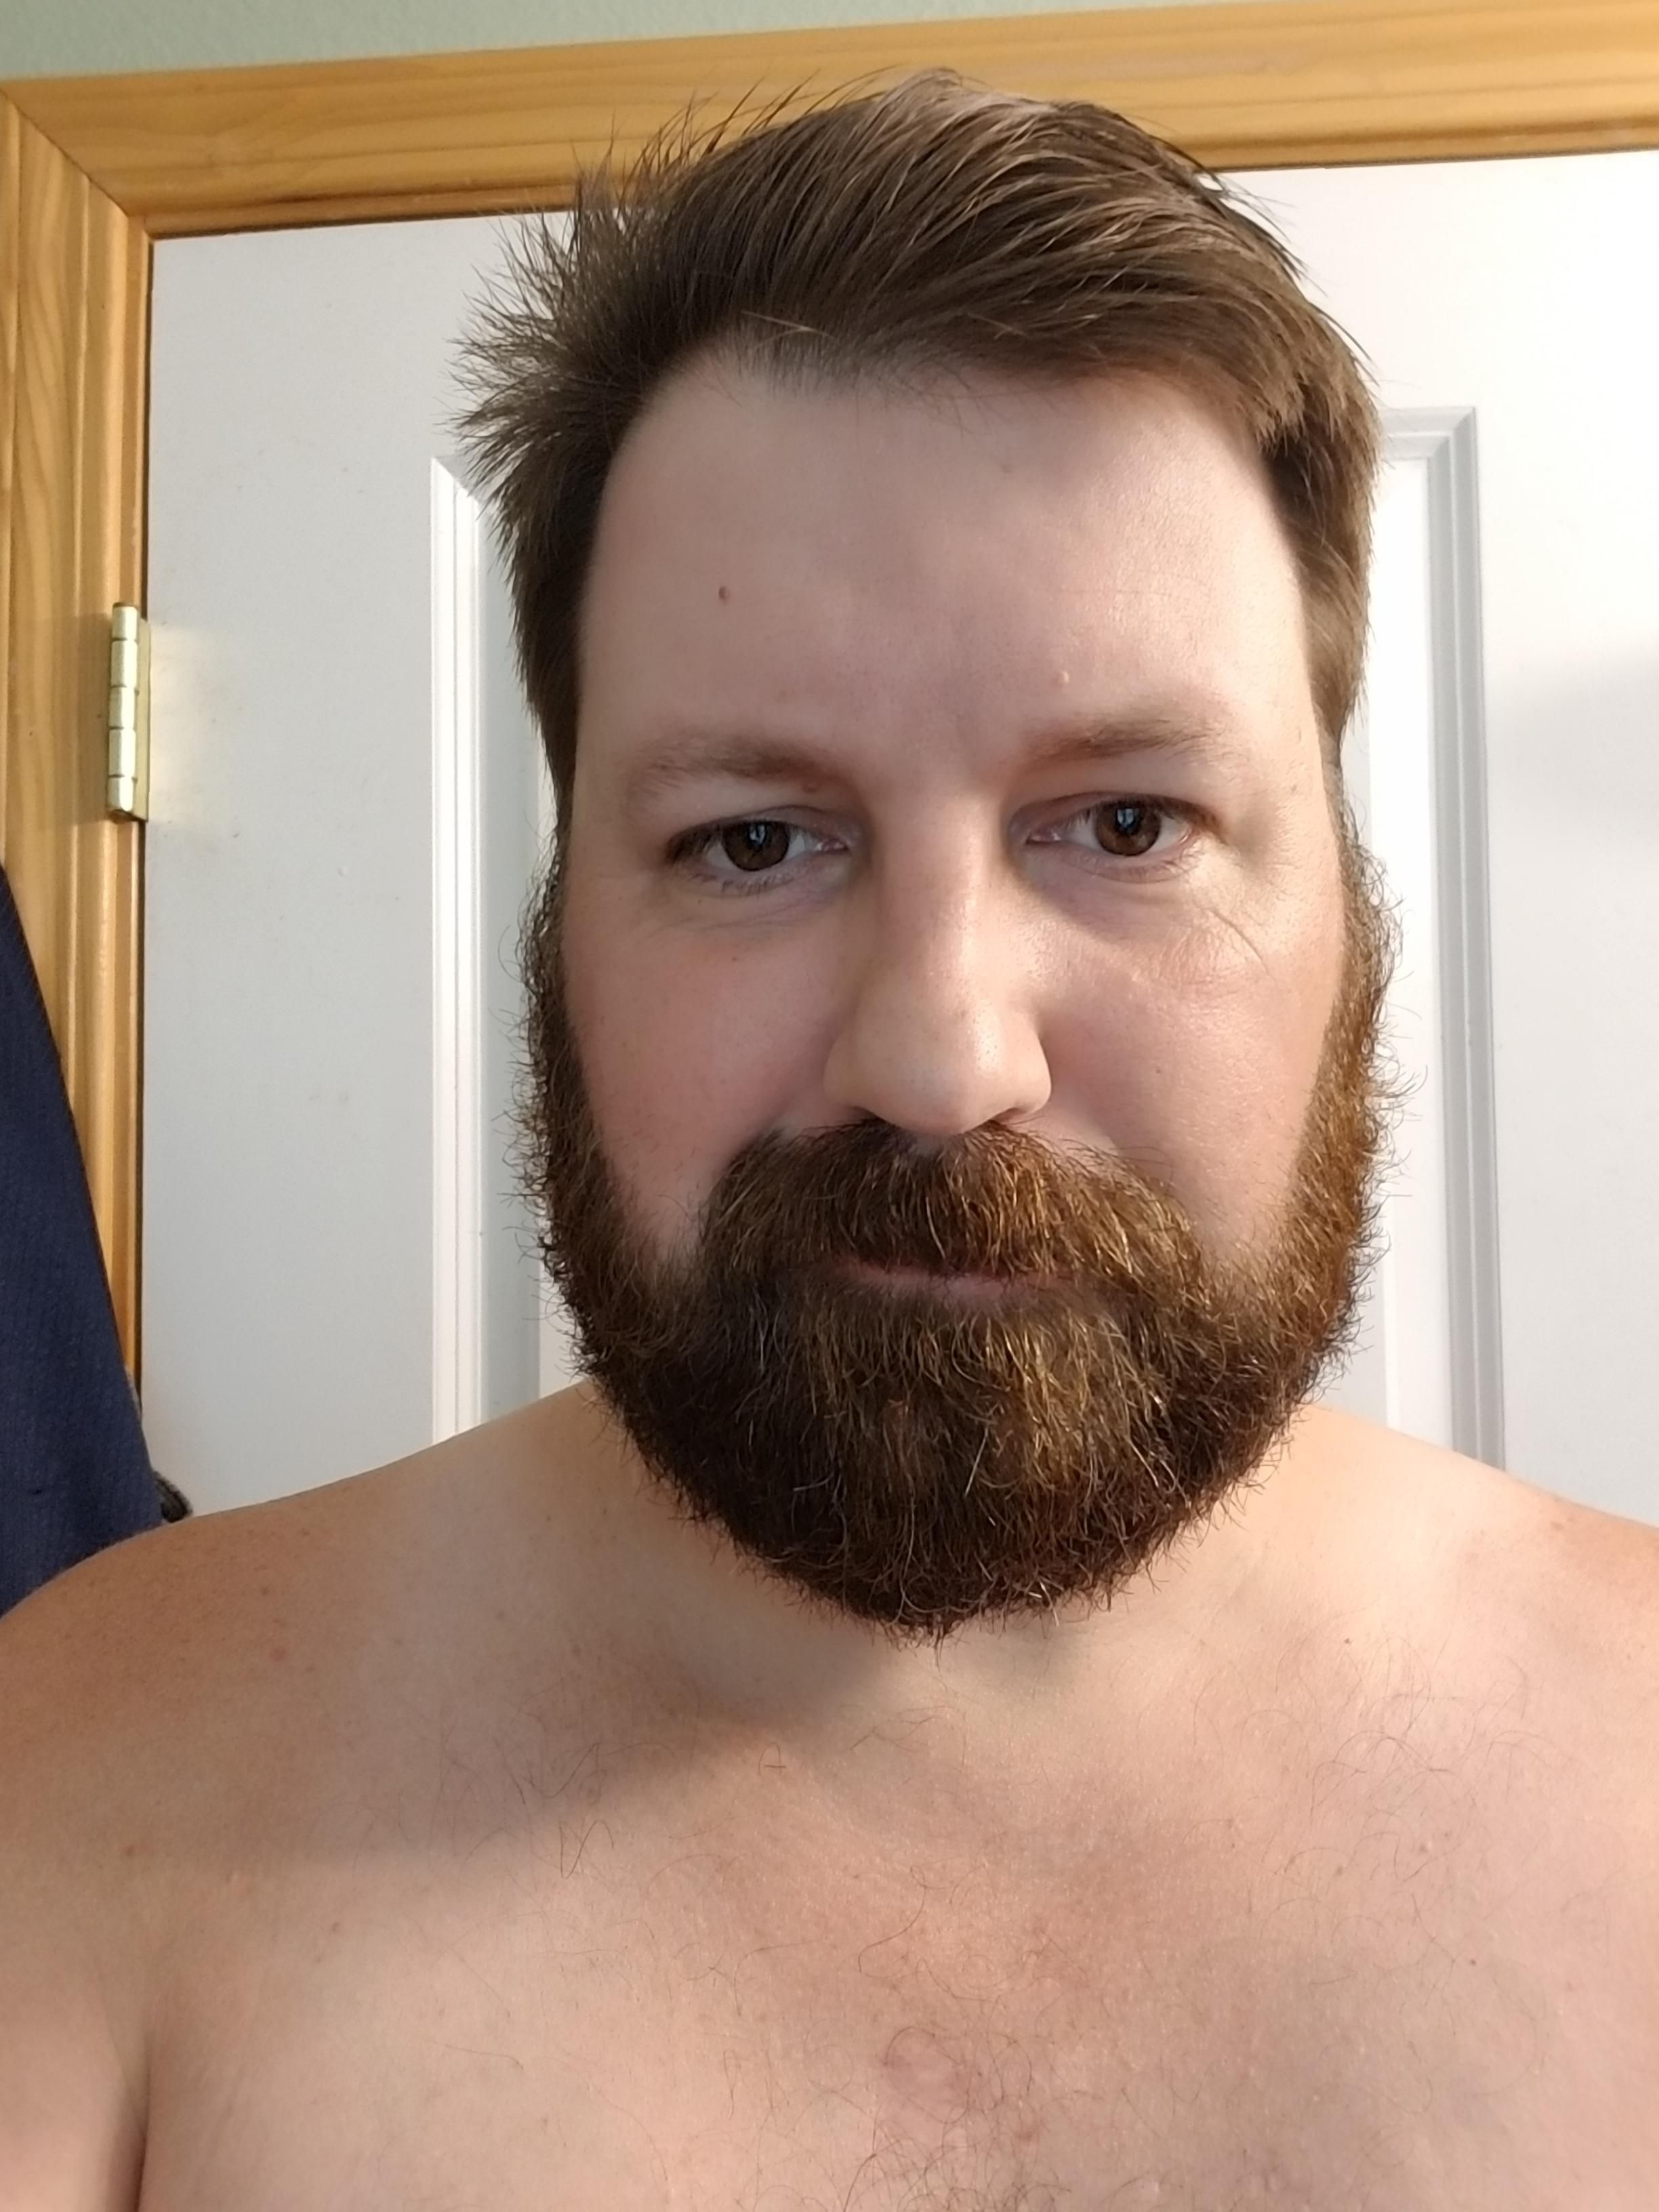 40 year old doing my first beard post just found reddit 3